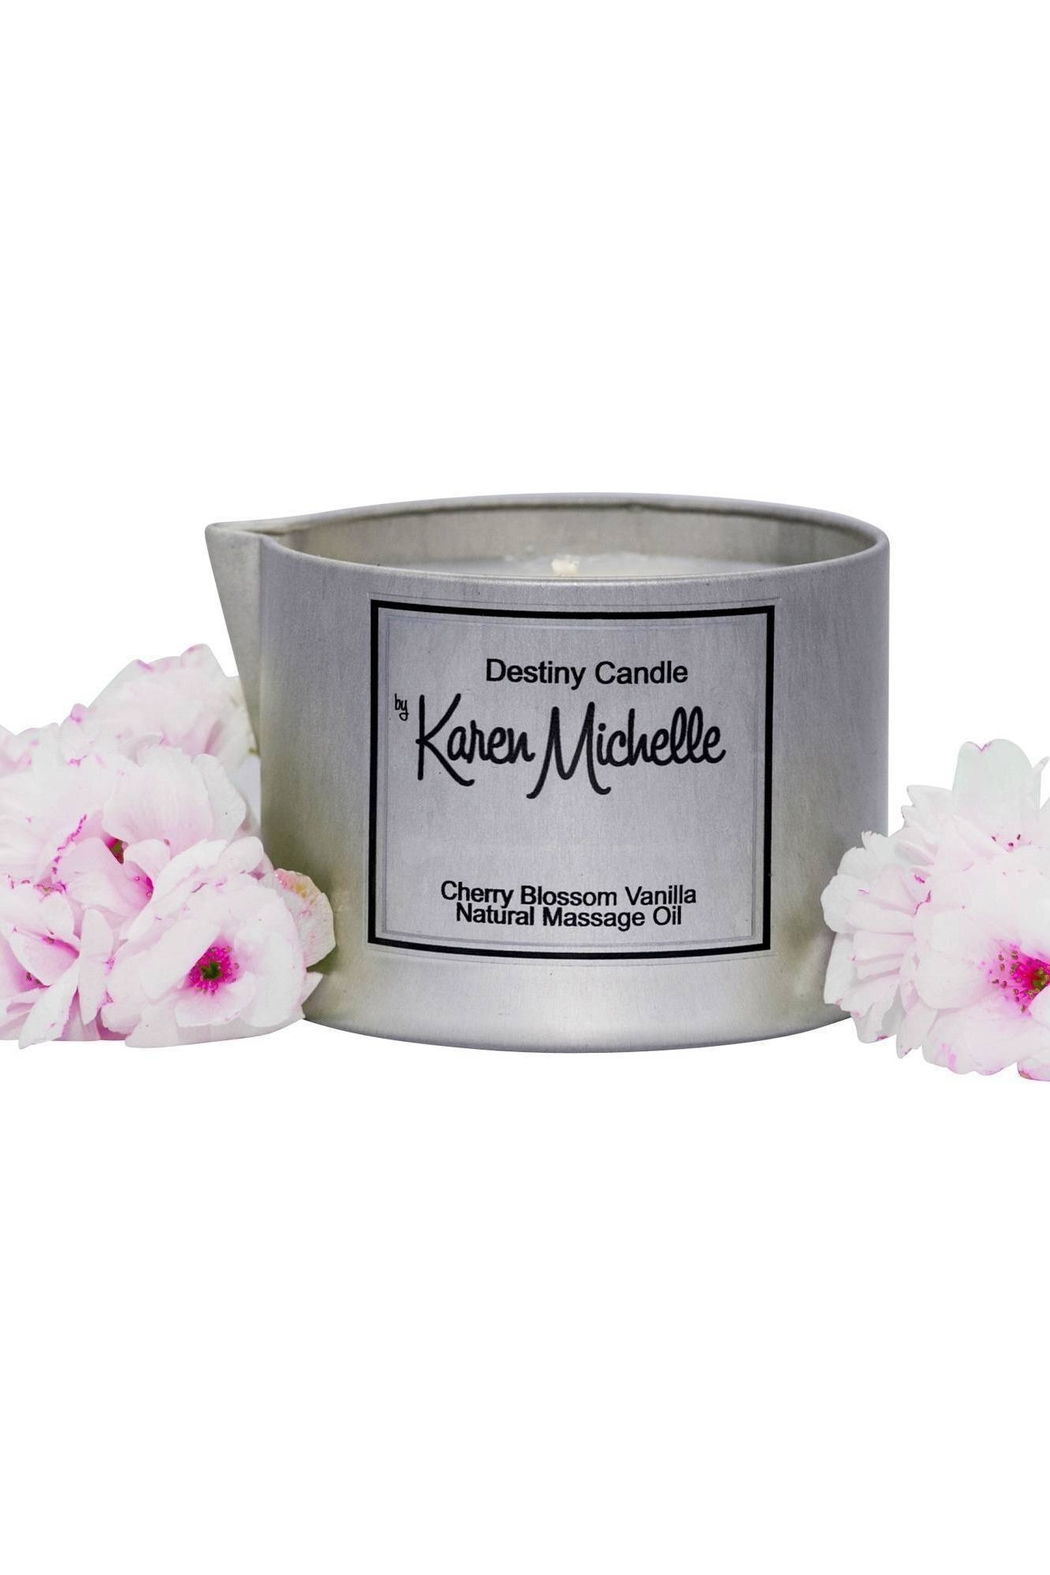 Destiny Candle by Karen Michelle Cherry Blossom Vanilla - Main Image